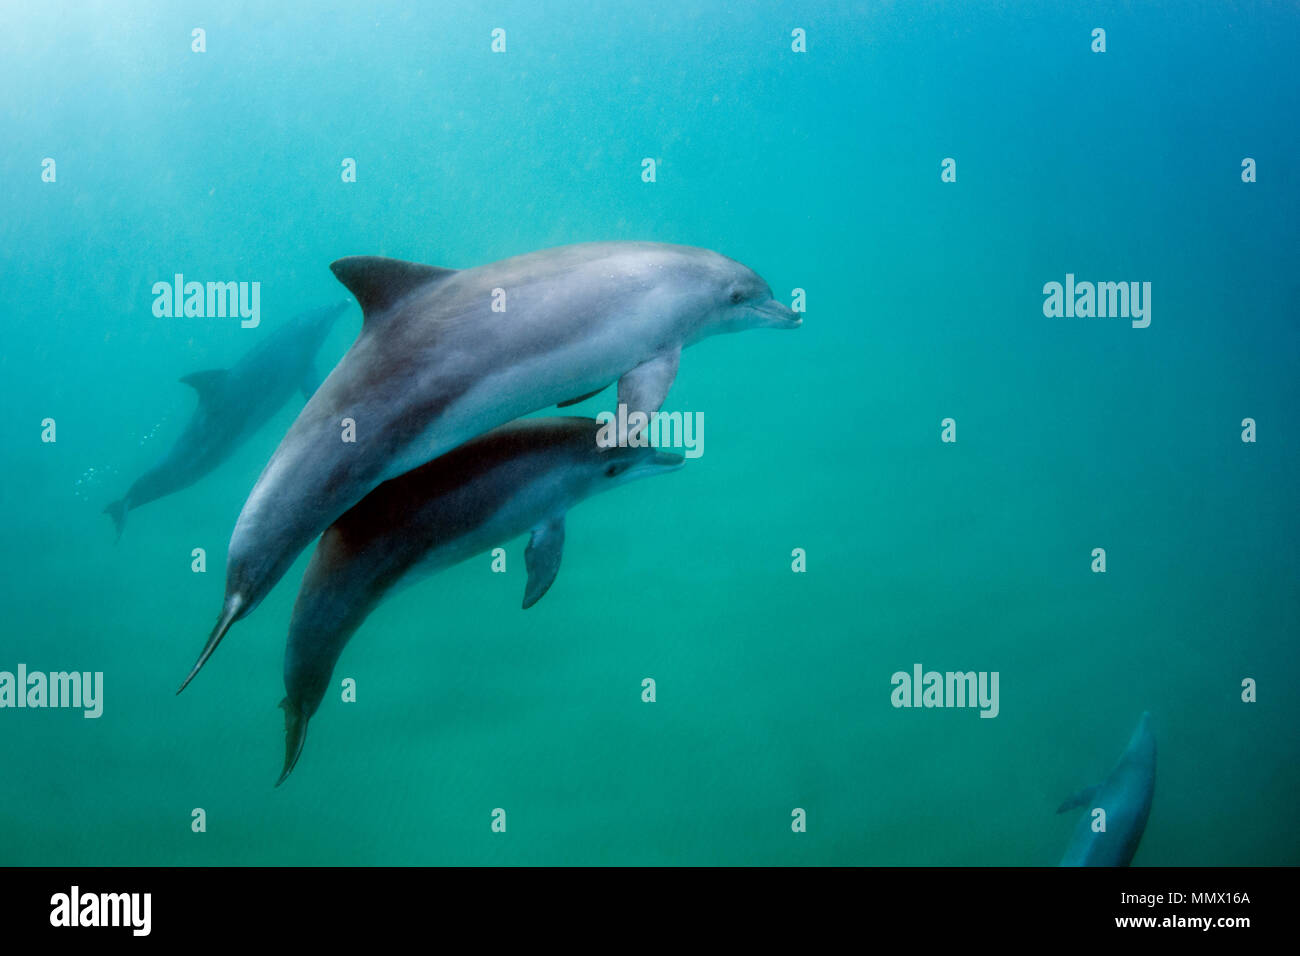 Bottlenose dolphin, Tursiops sp. (possibly T. aduncus), swims with calf, Coffee Bay, Eastern Cape Wild Coast, South Africa - Stock Image